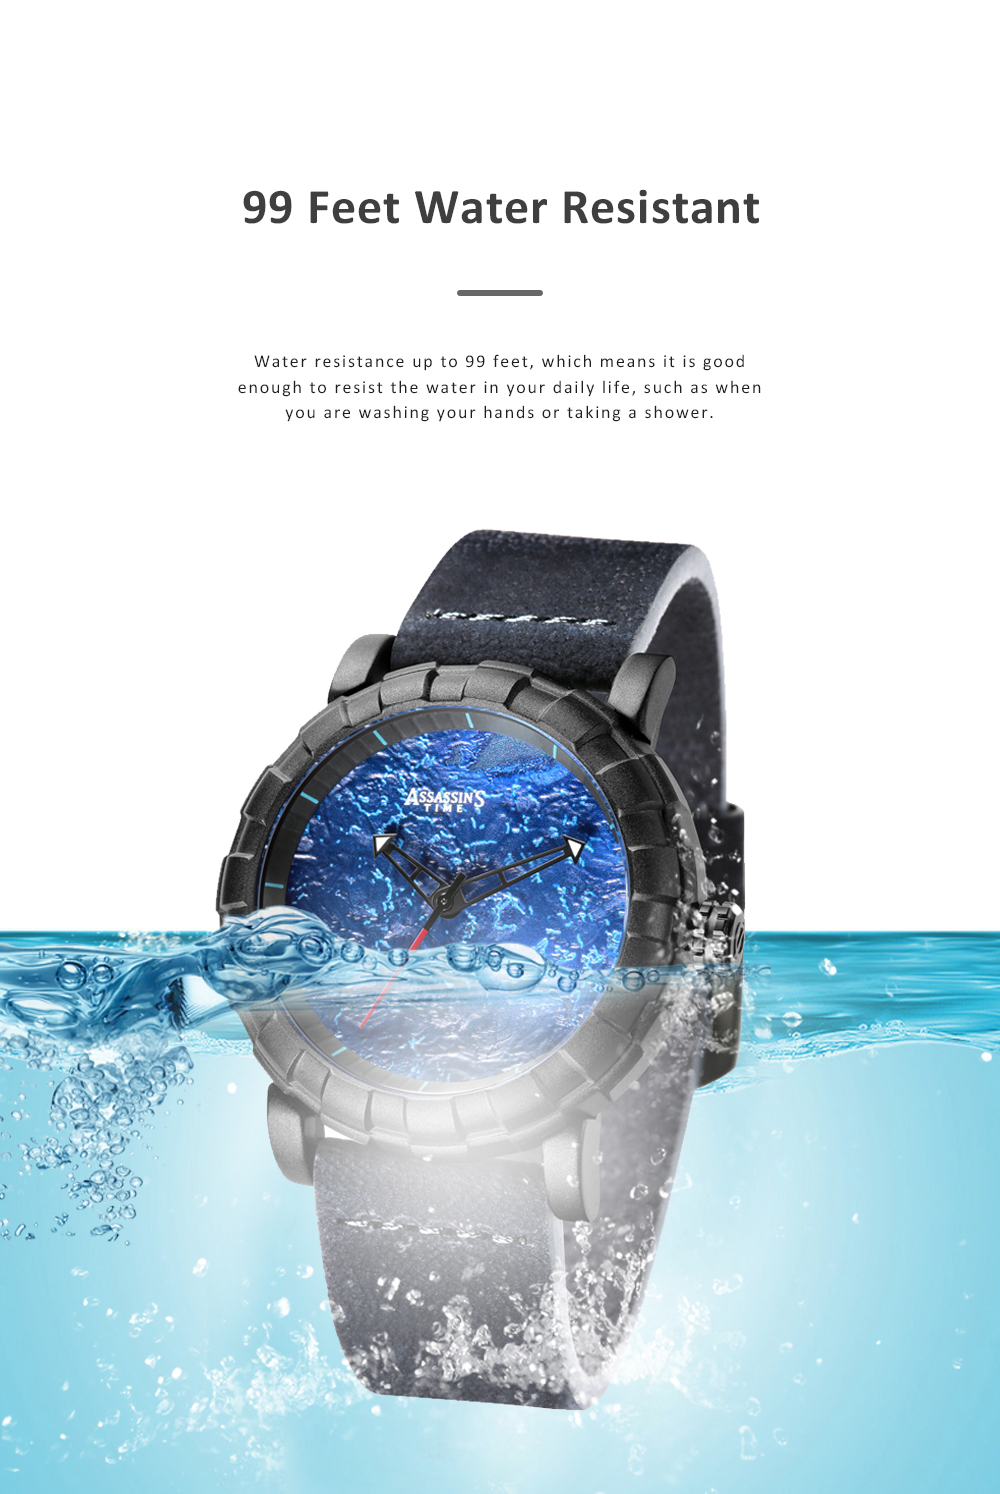 Burning Fire Creative Waterproof Electronic Watch for Men Casual with Quartz Movement and Adjustable Leather Strap 1